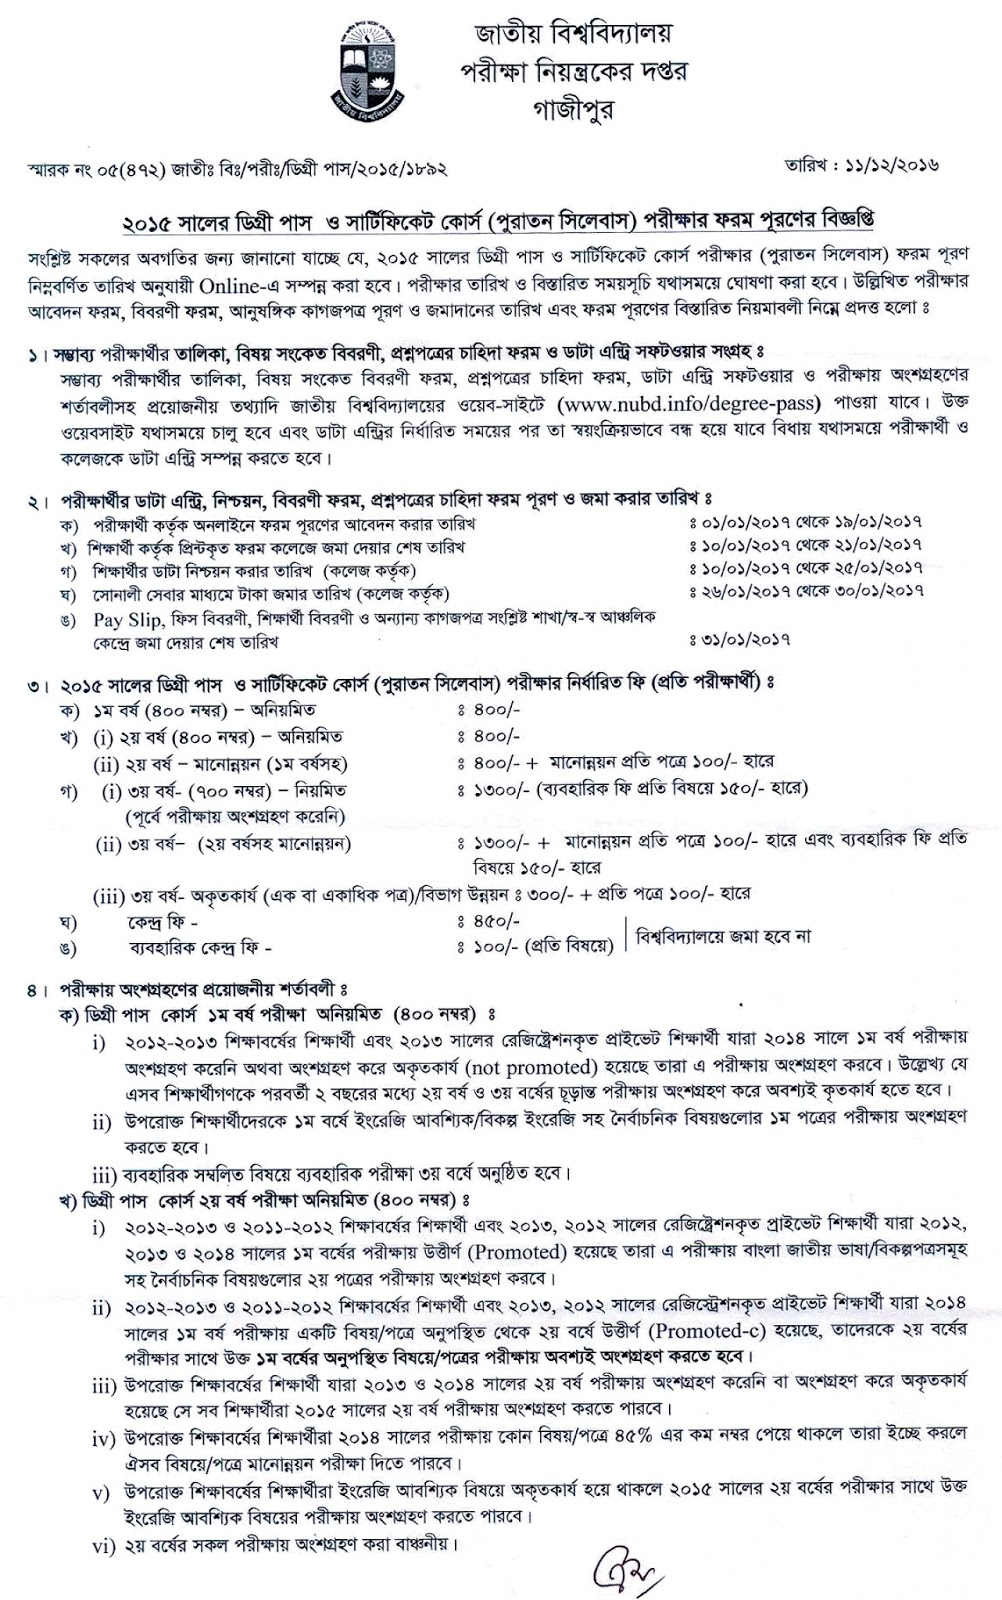 This is nu degree 3rd year form fill uo notice for students of old syllabus